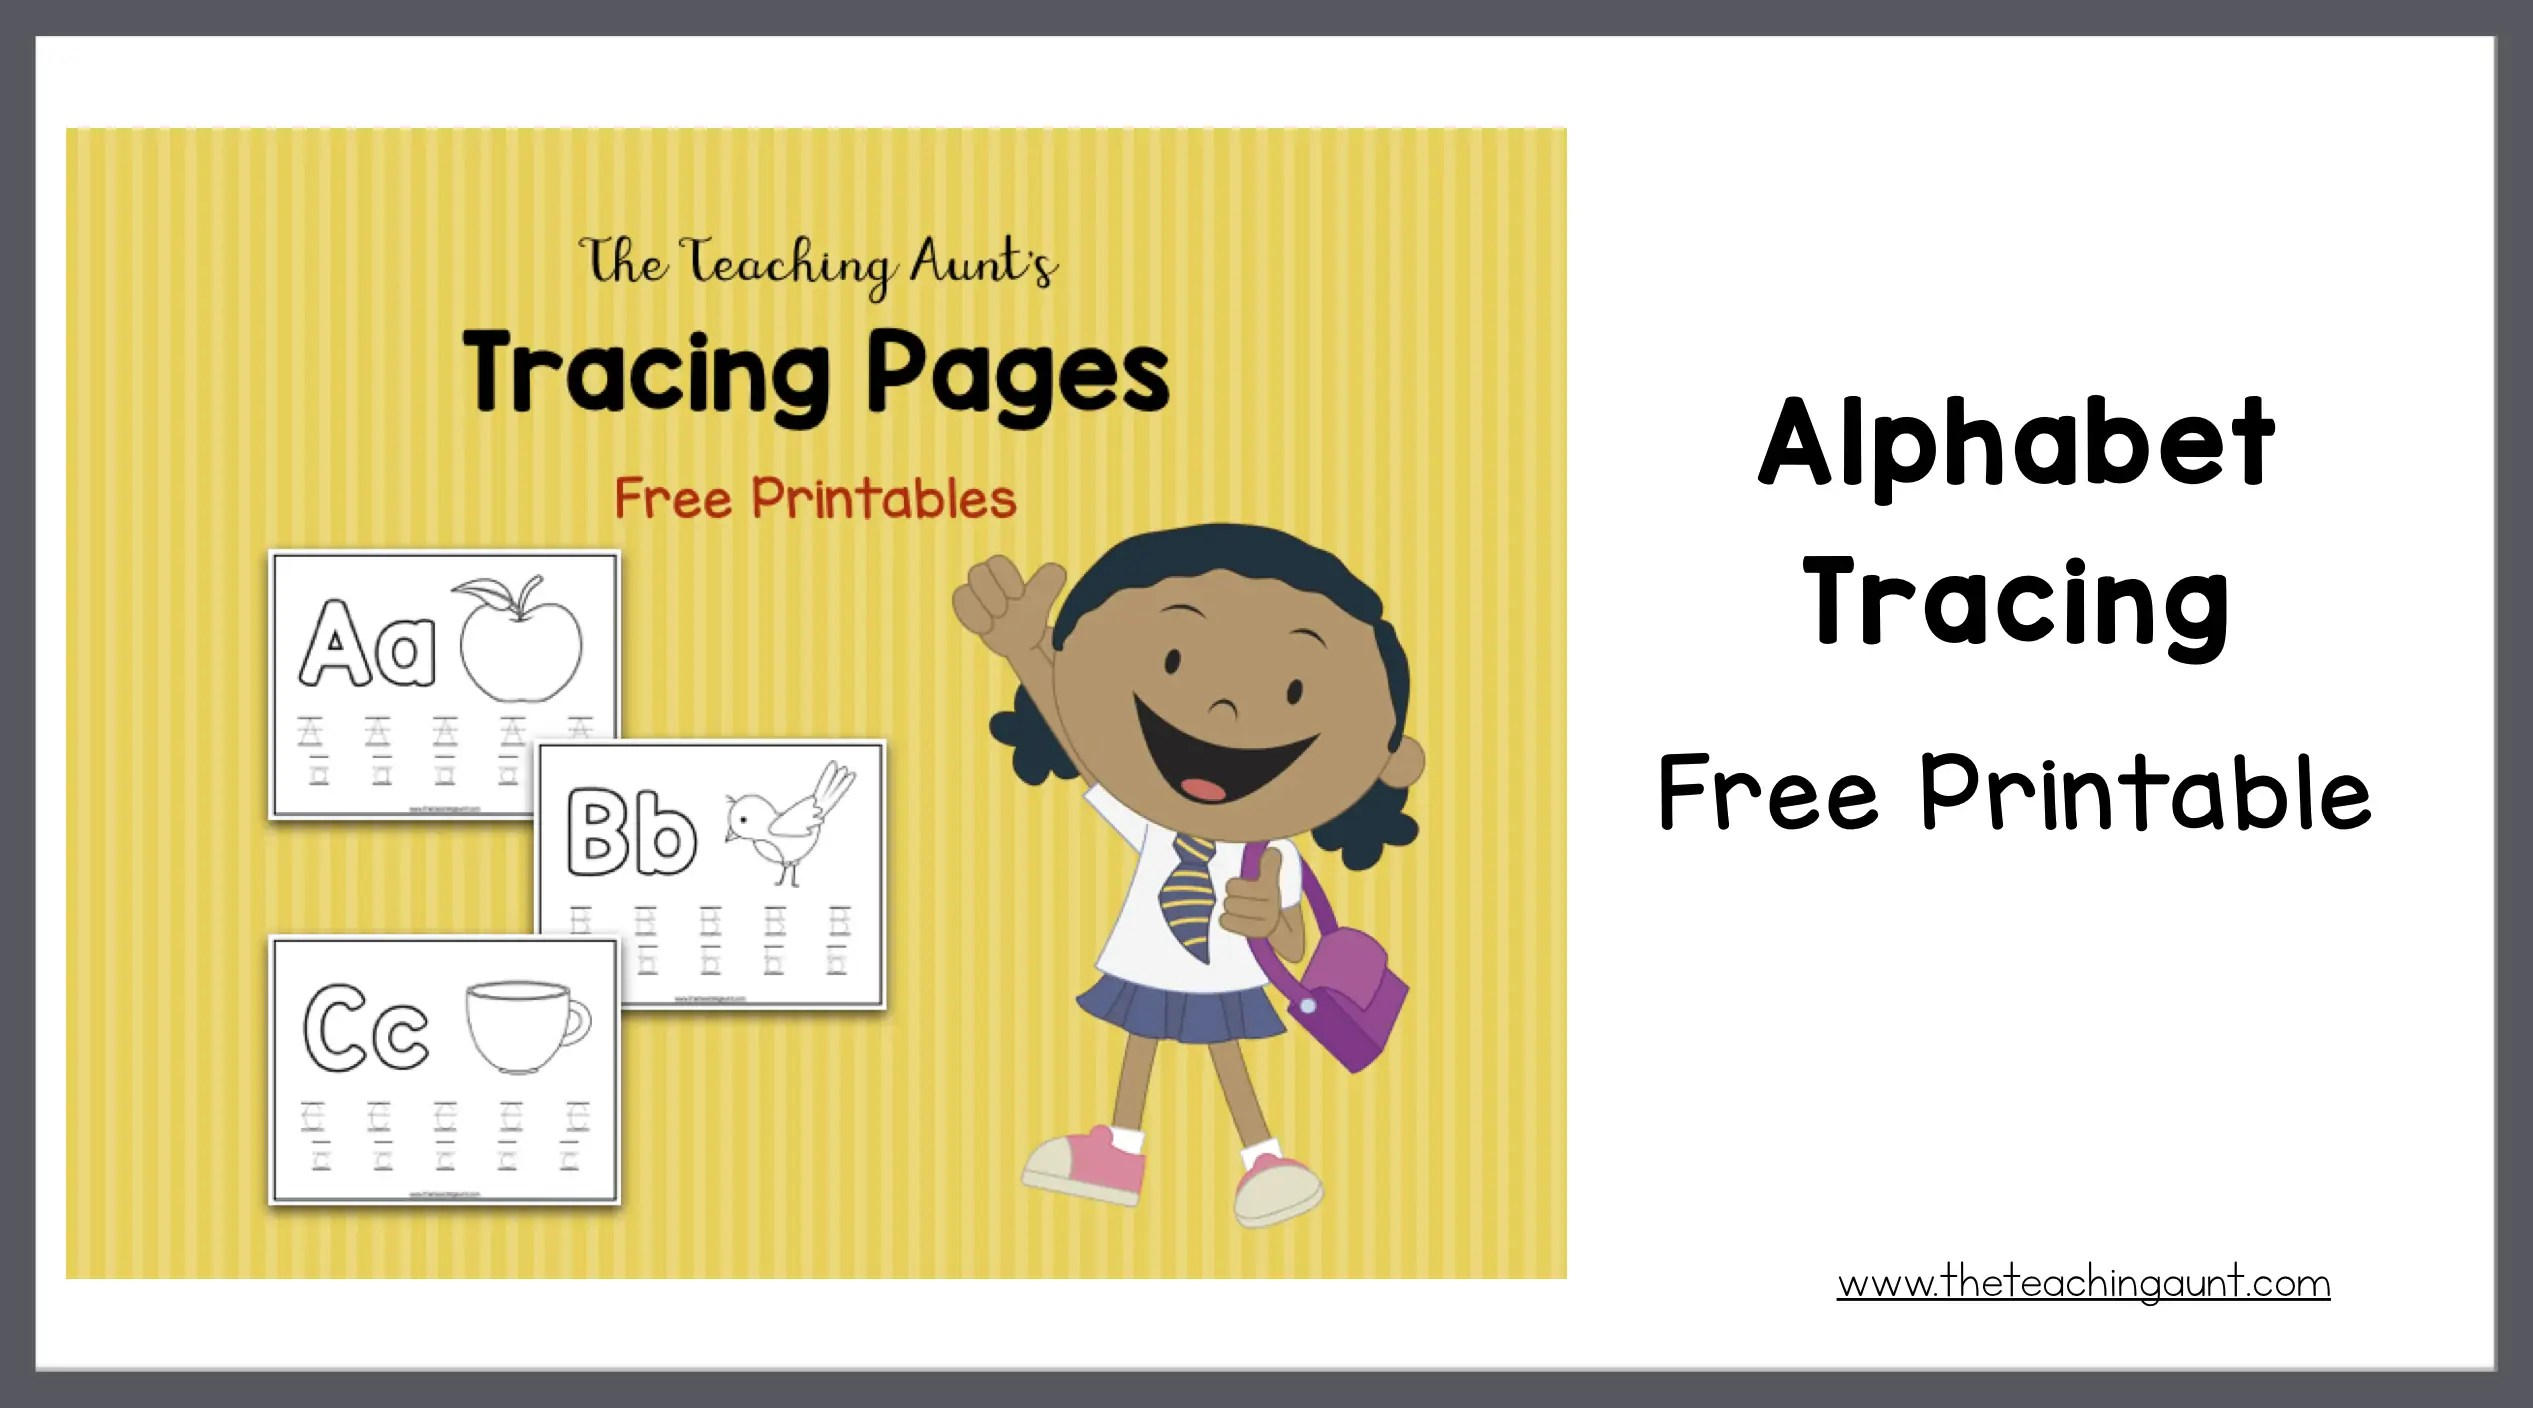 photo regarding We Know You Would Be Here Today Free Printable titled Alphabet Tracing No cost Printable - The Coaching Aunt